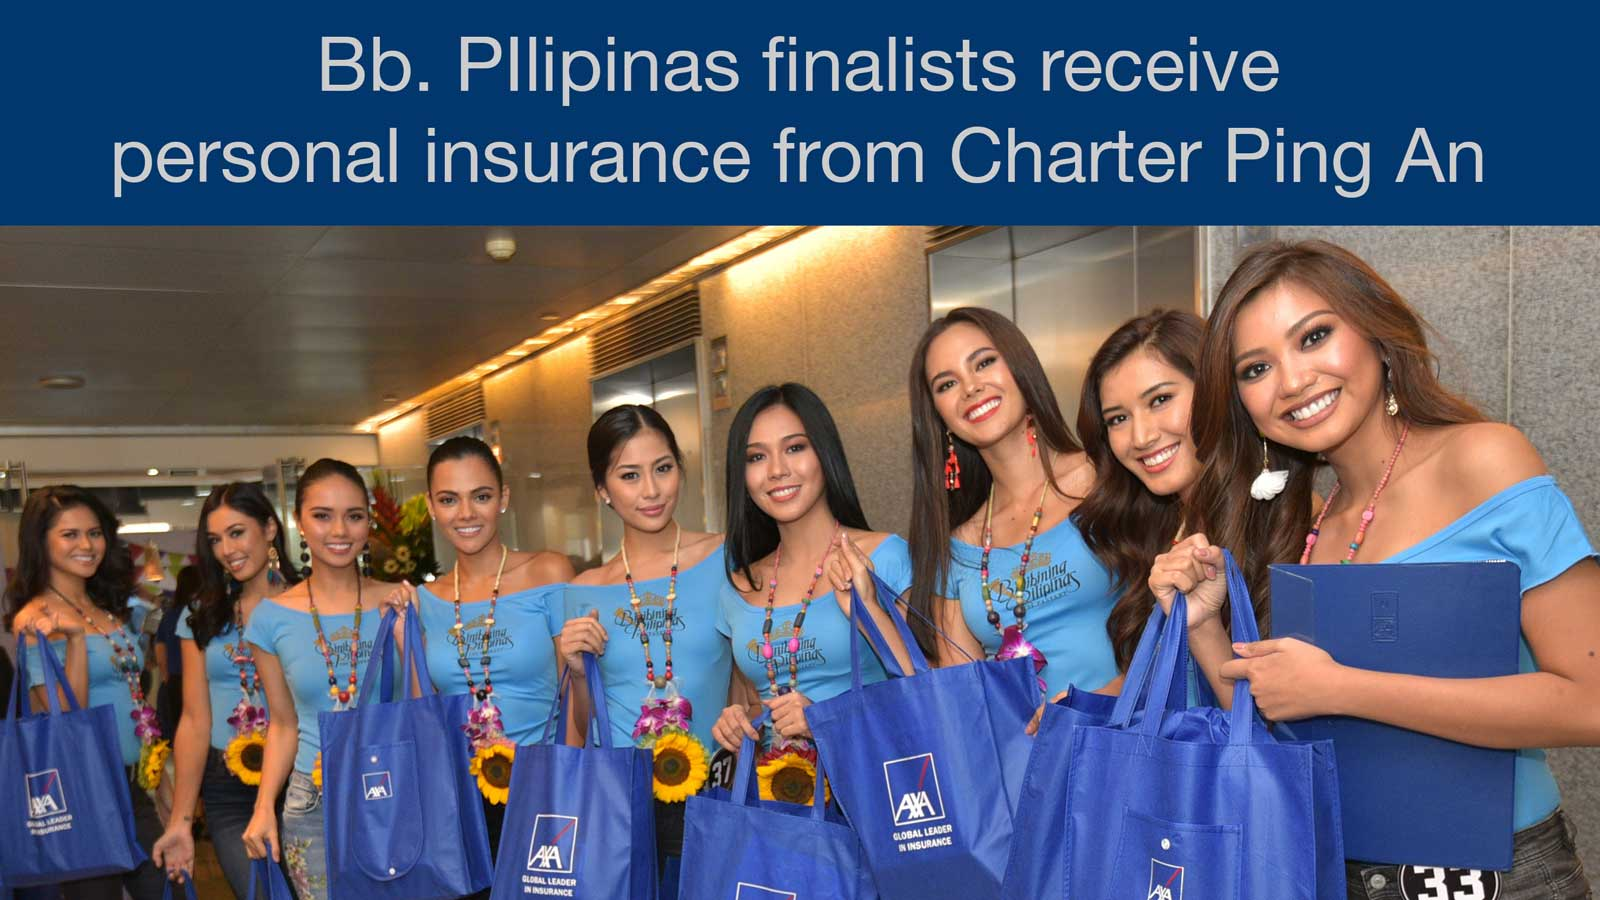 Bb. Pilipinas 2018 candidates receive personal insurance coverage from Charter Ping An